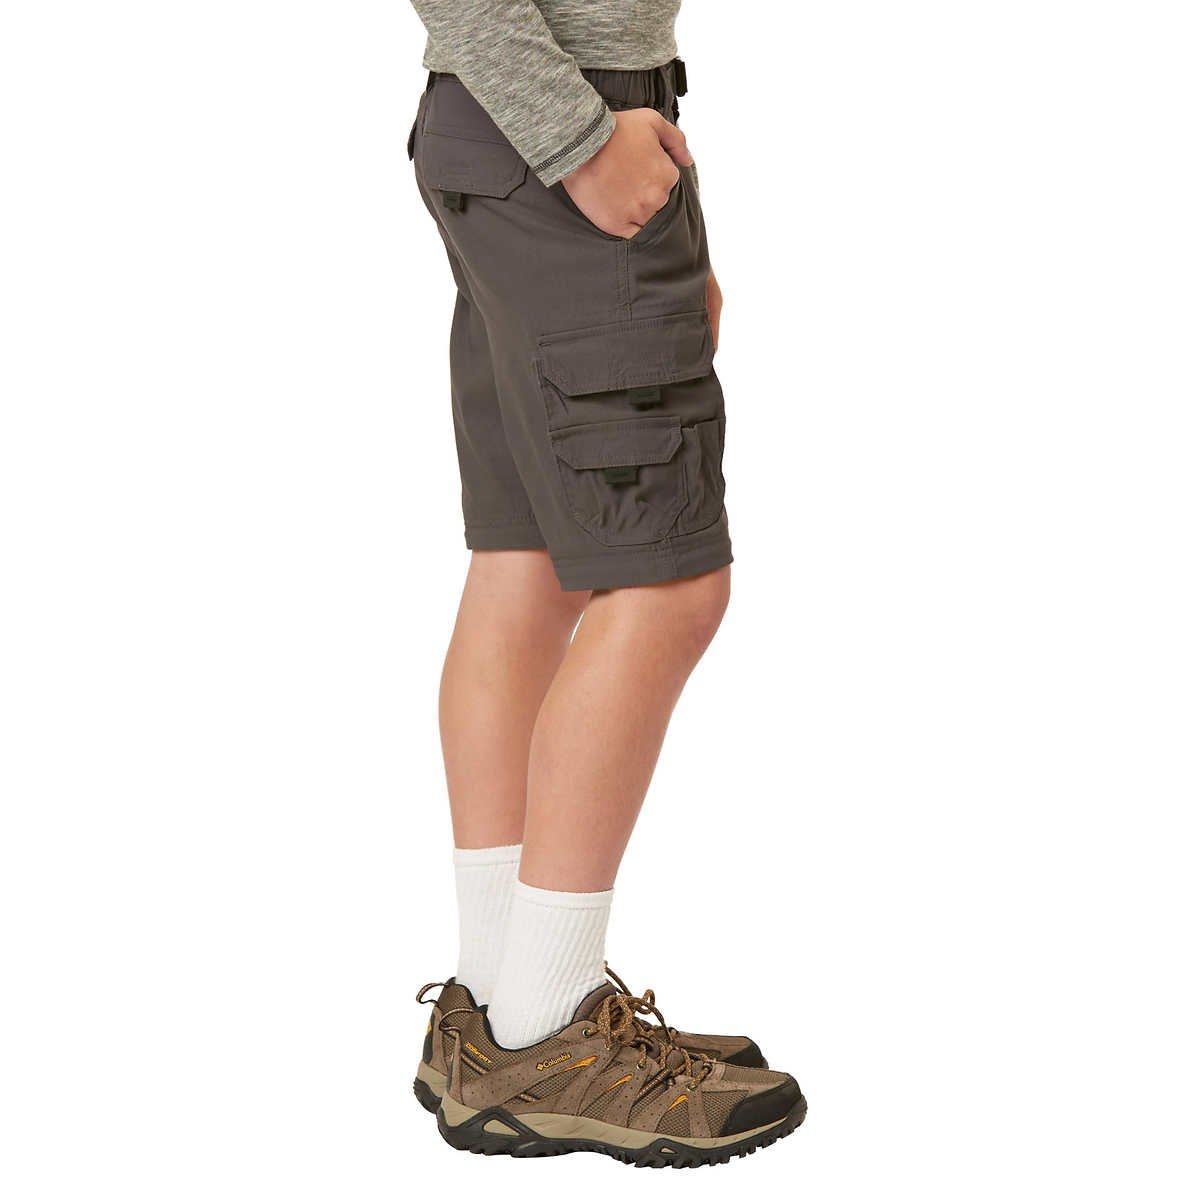 UNIONBAY Boy's Youth Convertible Lightweight Comfort Stretch Cargo Pants/Shorts (X-Small (5/6), Charcoal) by UNIONBAY (Image #6)